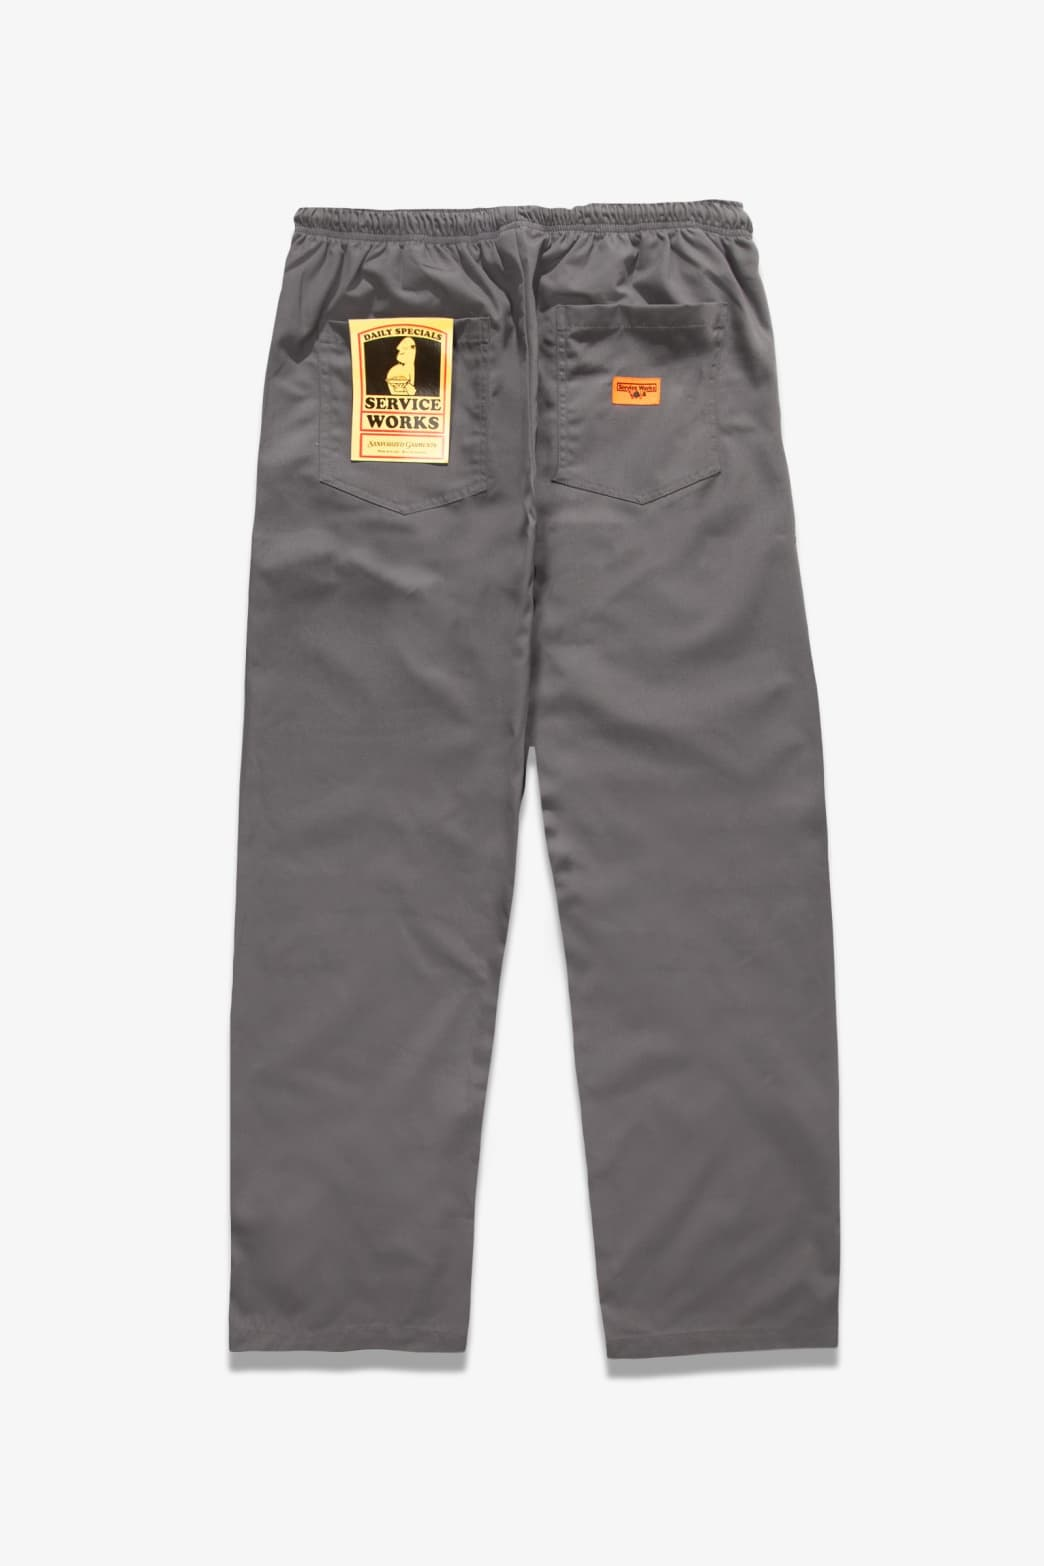 Service Works - Trade Chef Pants - Grey | Trousers by Service Works 1